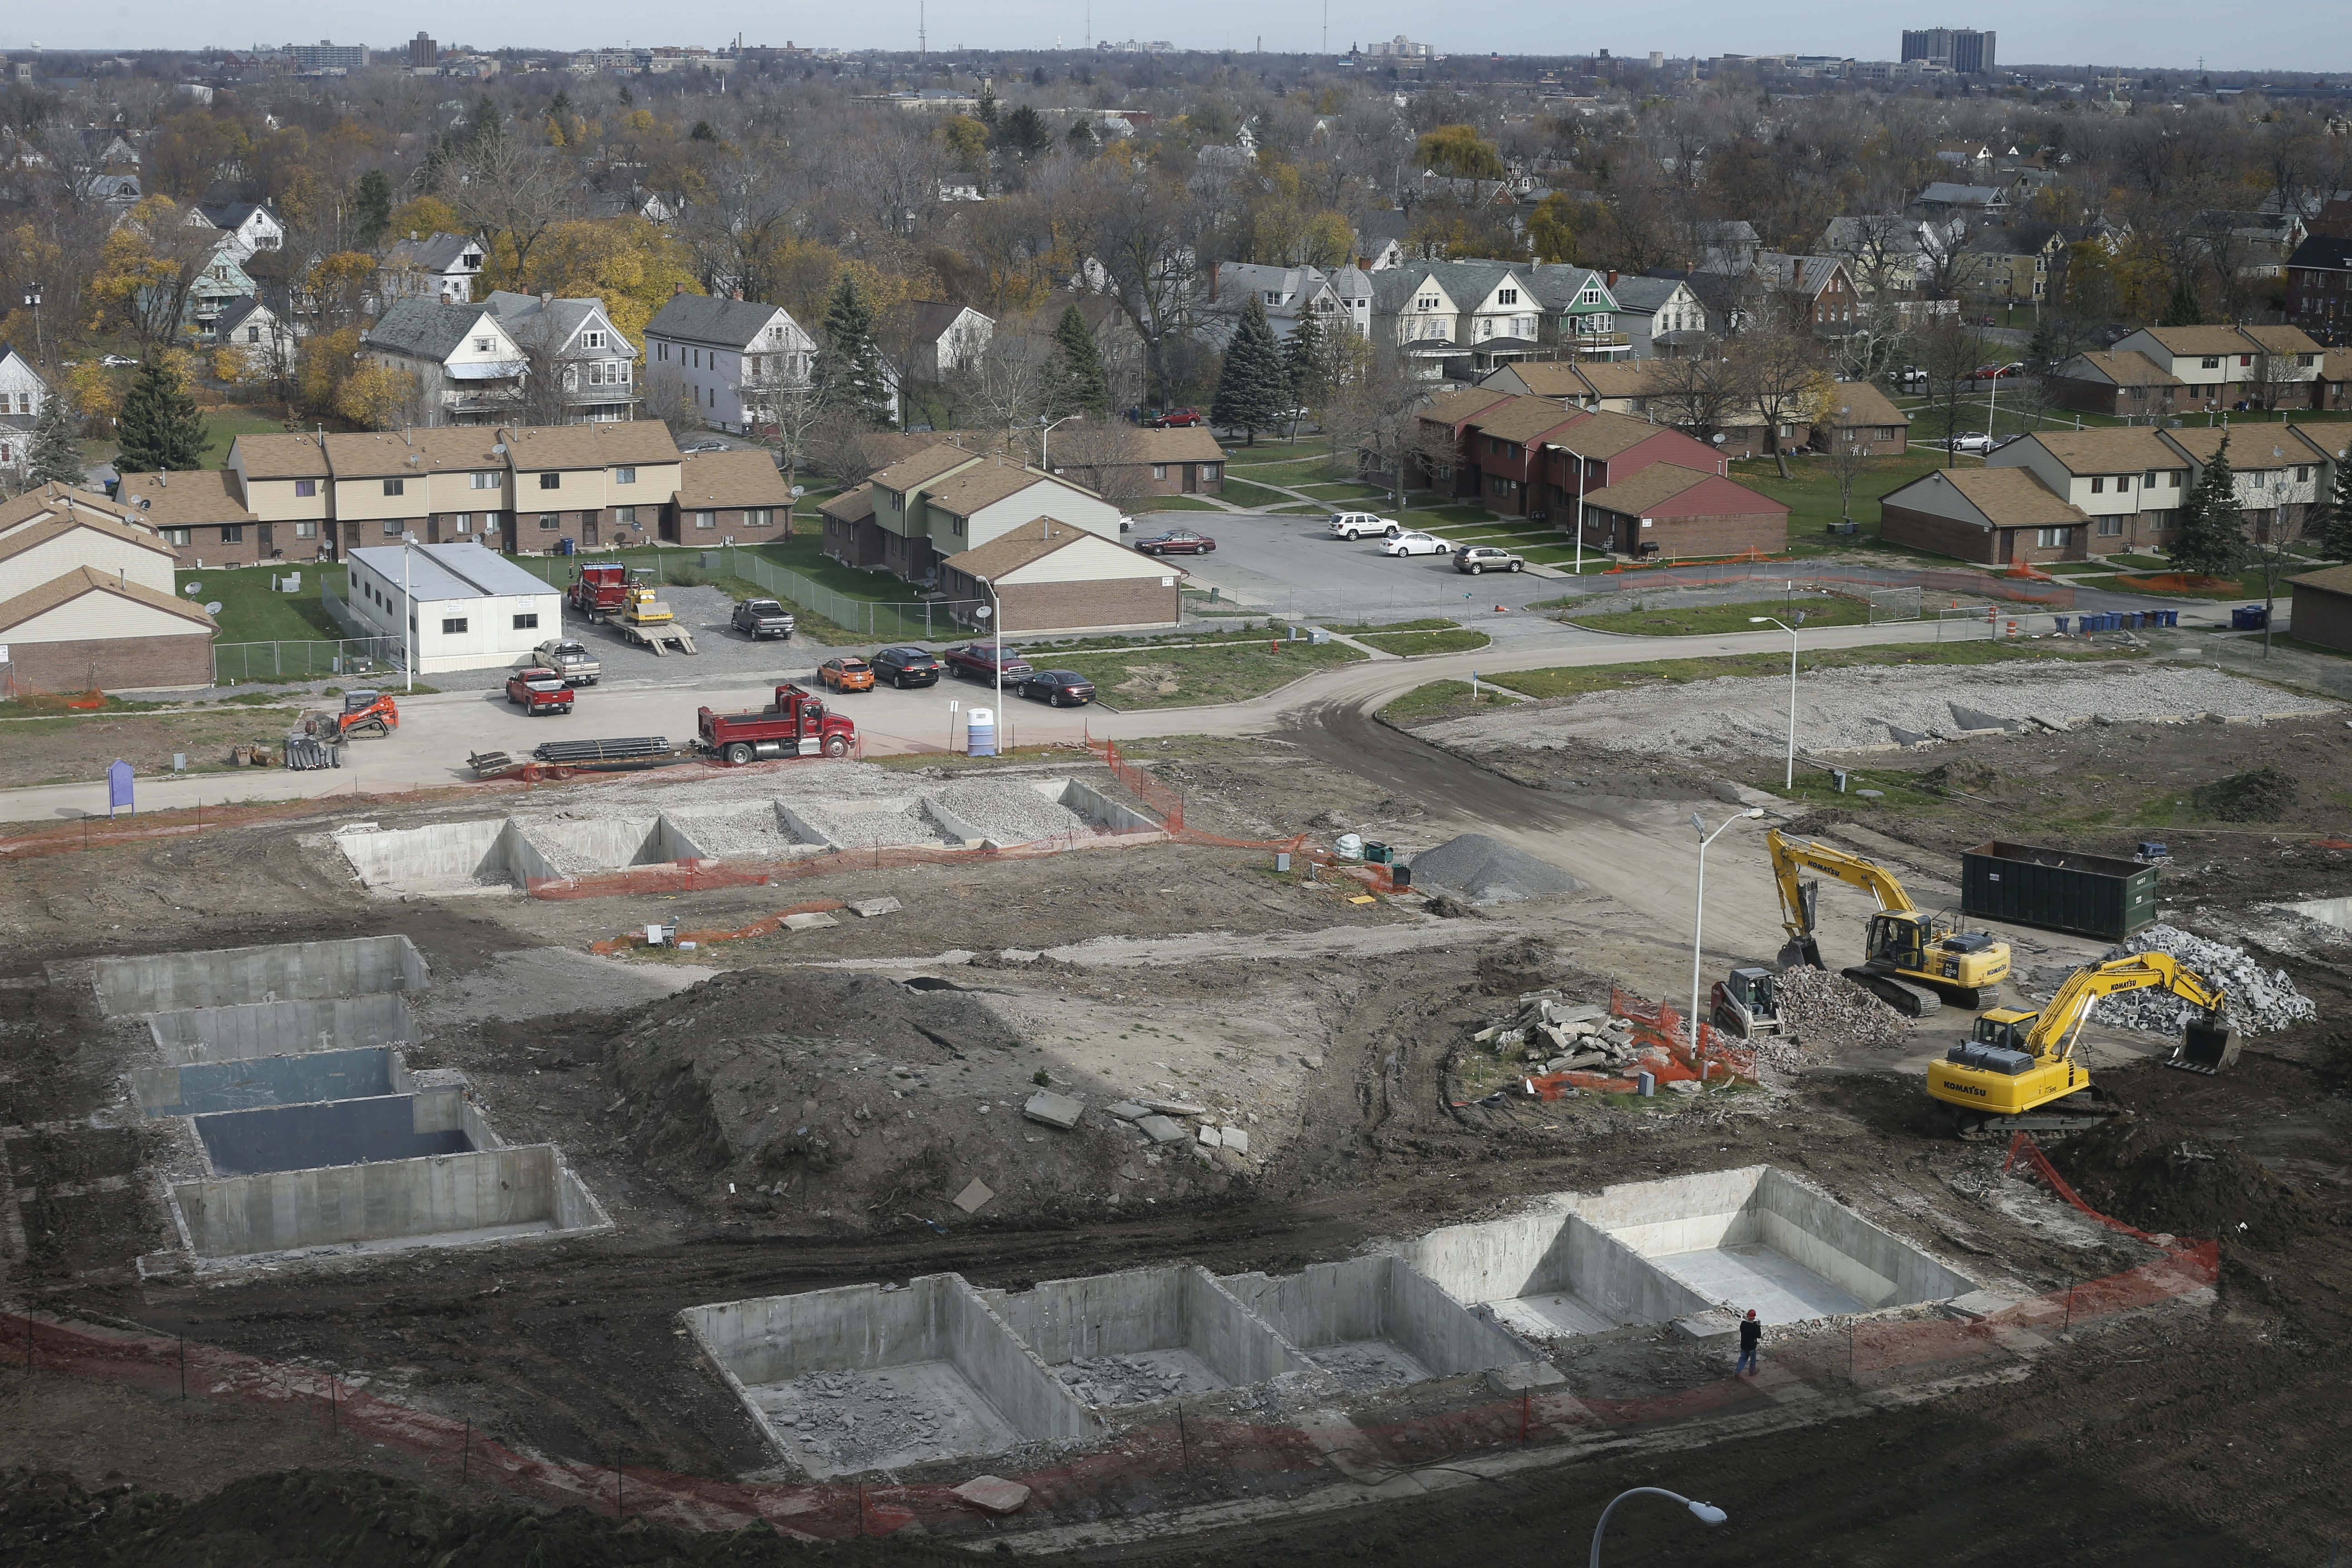 Demolition of the former Pilgrim Village housing complex is the first phase of the development project on the Buffalo Niagara Medical Campus. The project will add low-income and market-rate housing, along with new commercial space, to the neighborhood.